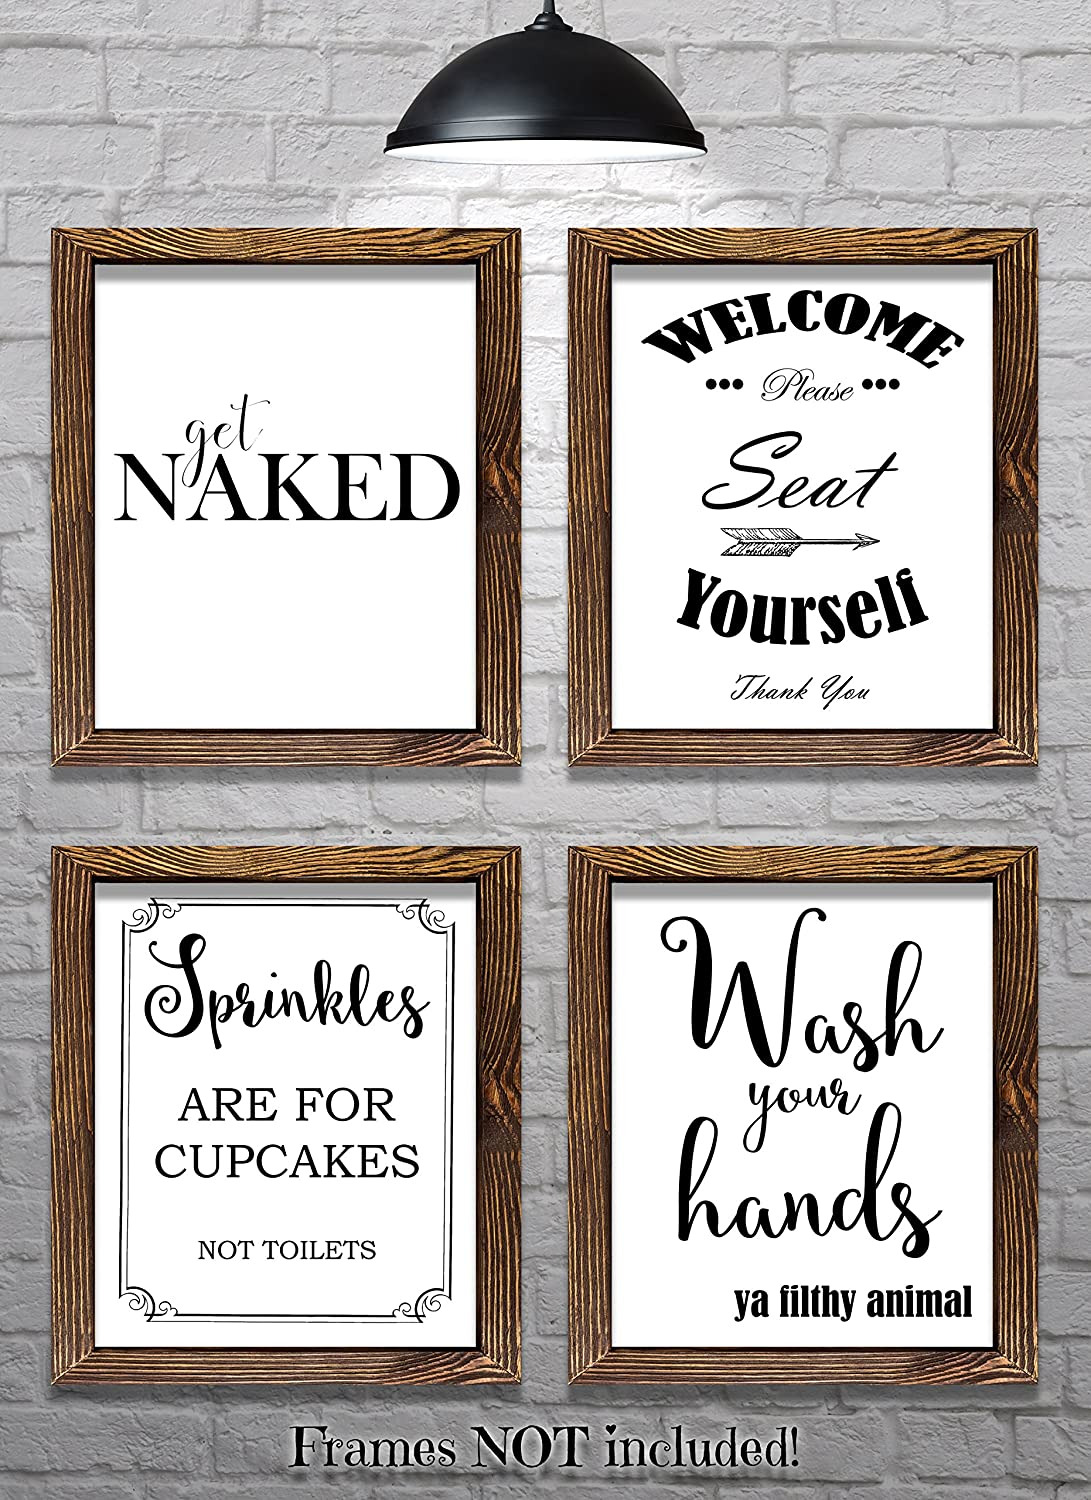 Wall Decor for Bathrooms Awesome Amazon Bathroom Wall Decor Bathroom Sayings and